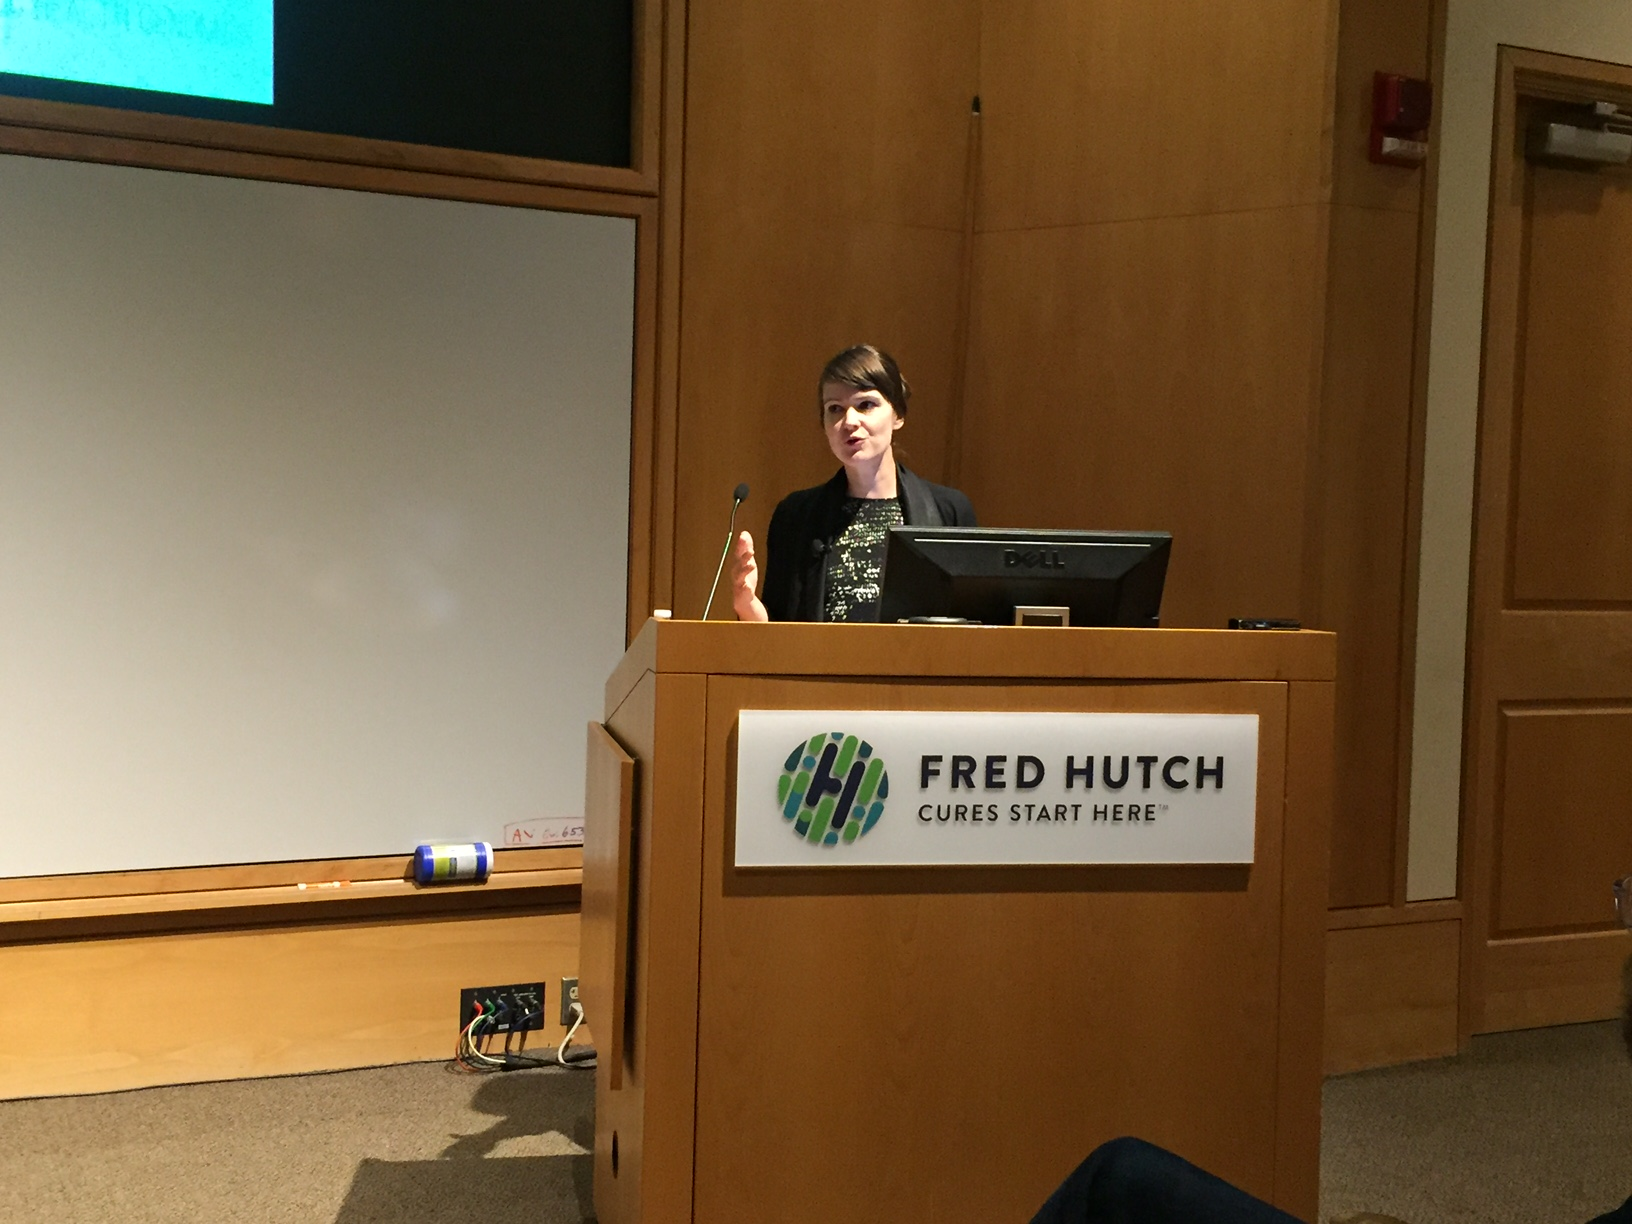 Jennifer Gardy presenting at Fred Hutch.